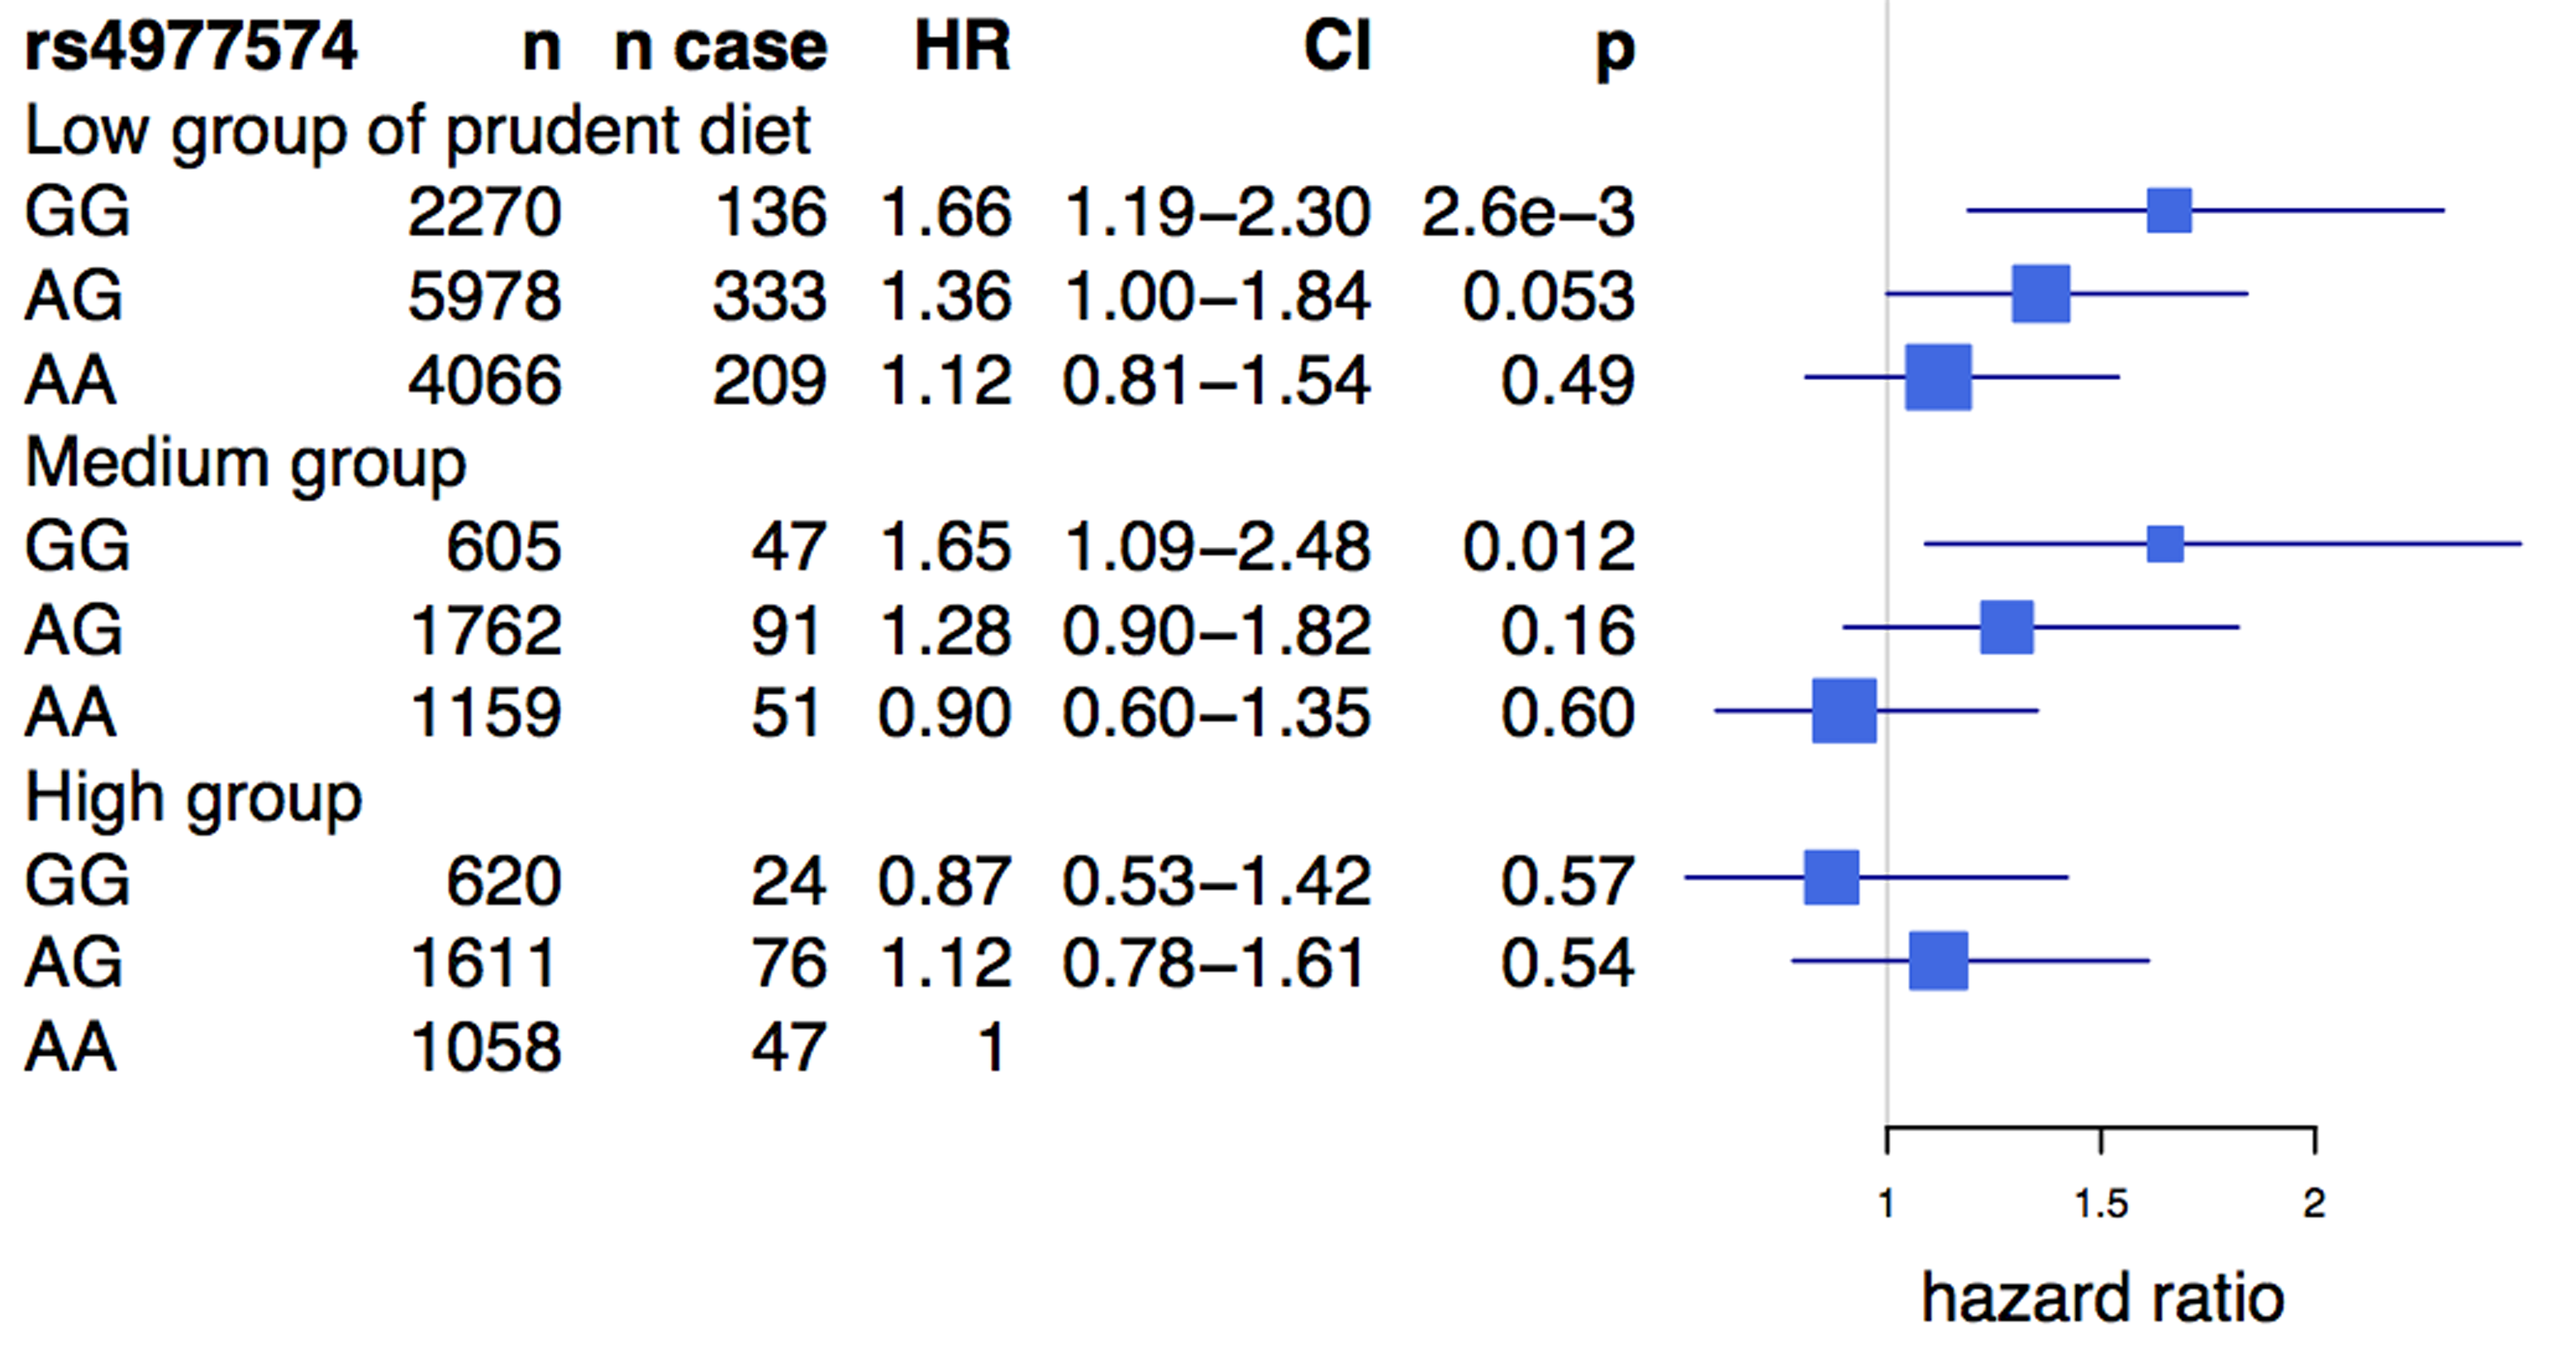 Risk of cardiovascular disease associated with prudent diet and the Chromosome 9p21 variant rs4977574 in the FINRISK study.